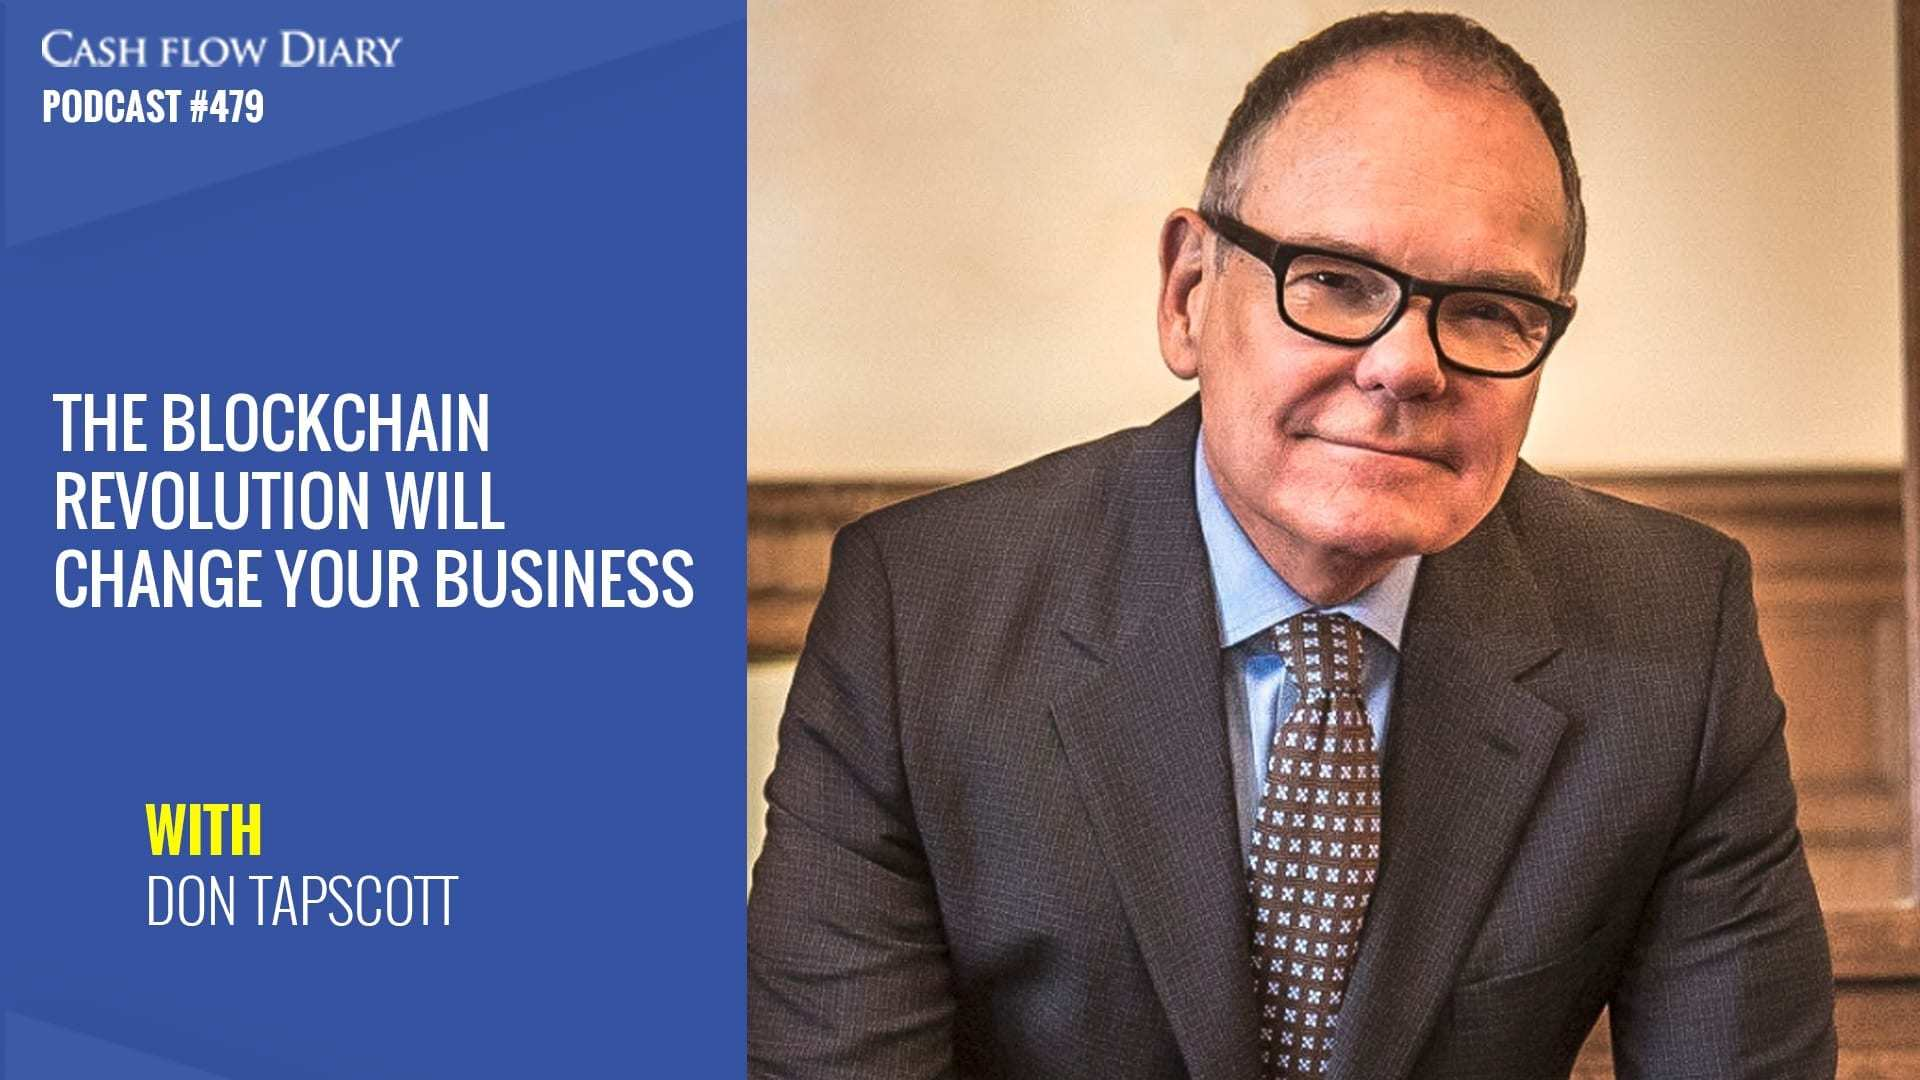 The Blockchain Revolution Will Change Your Business